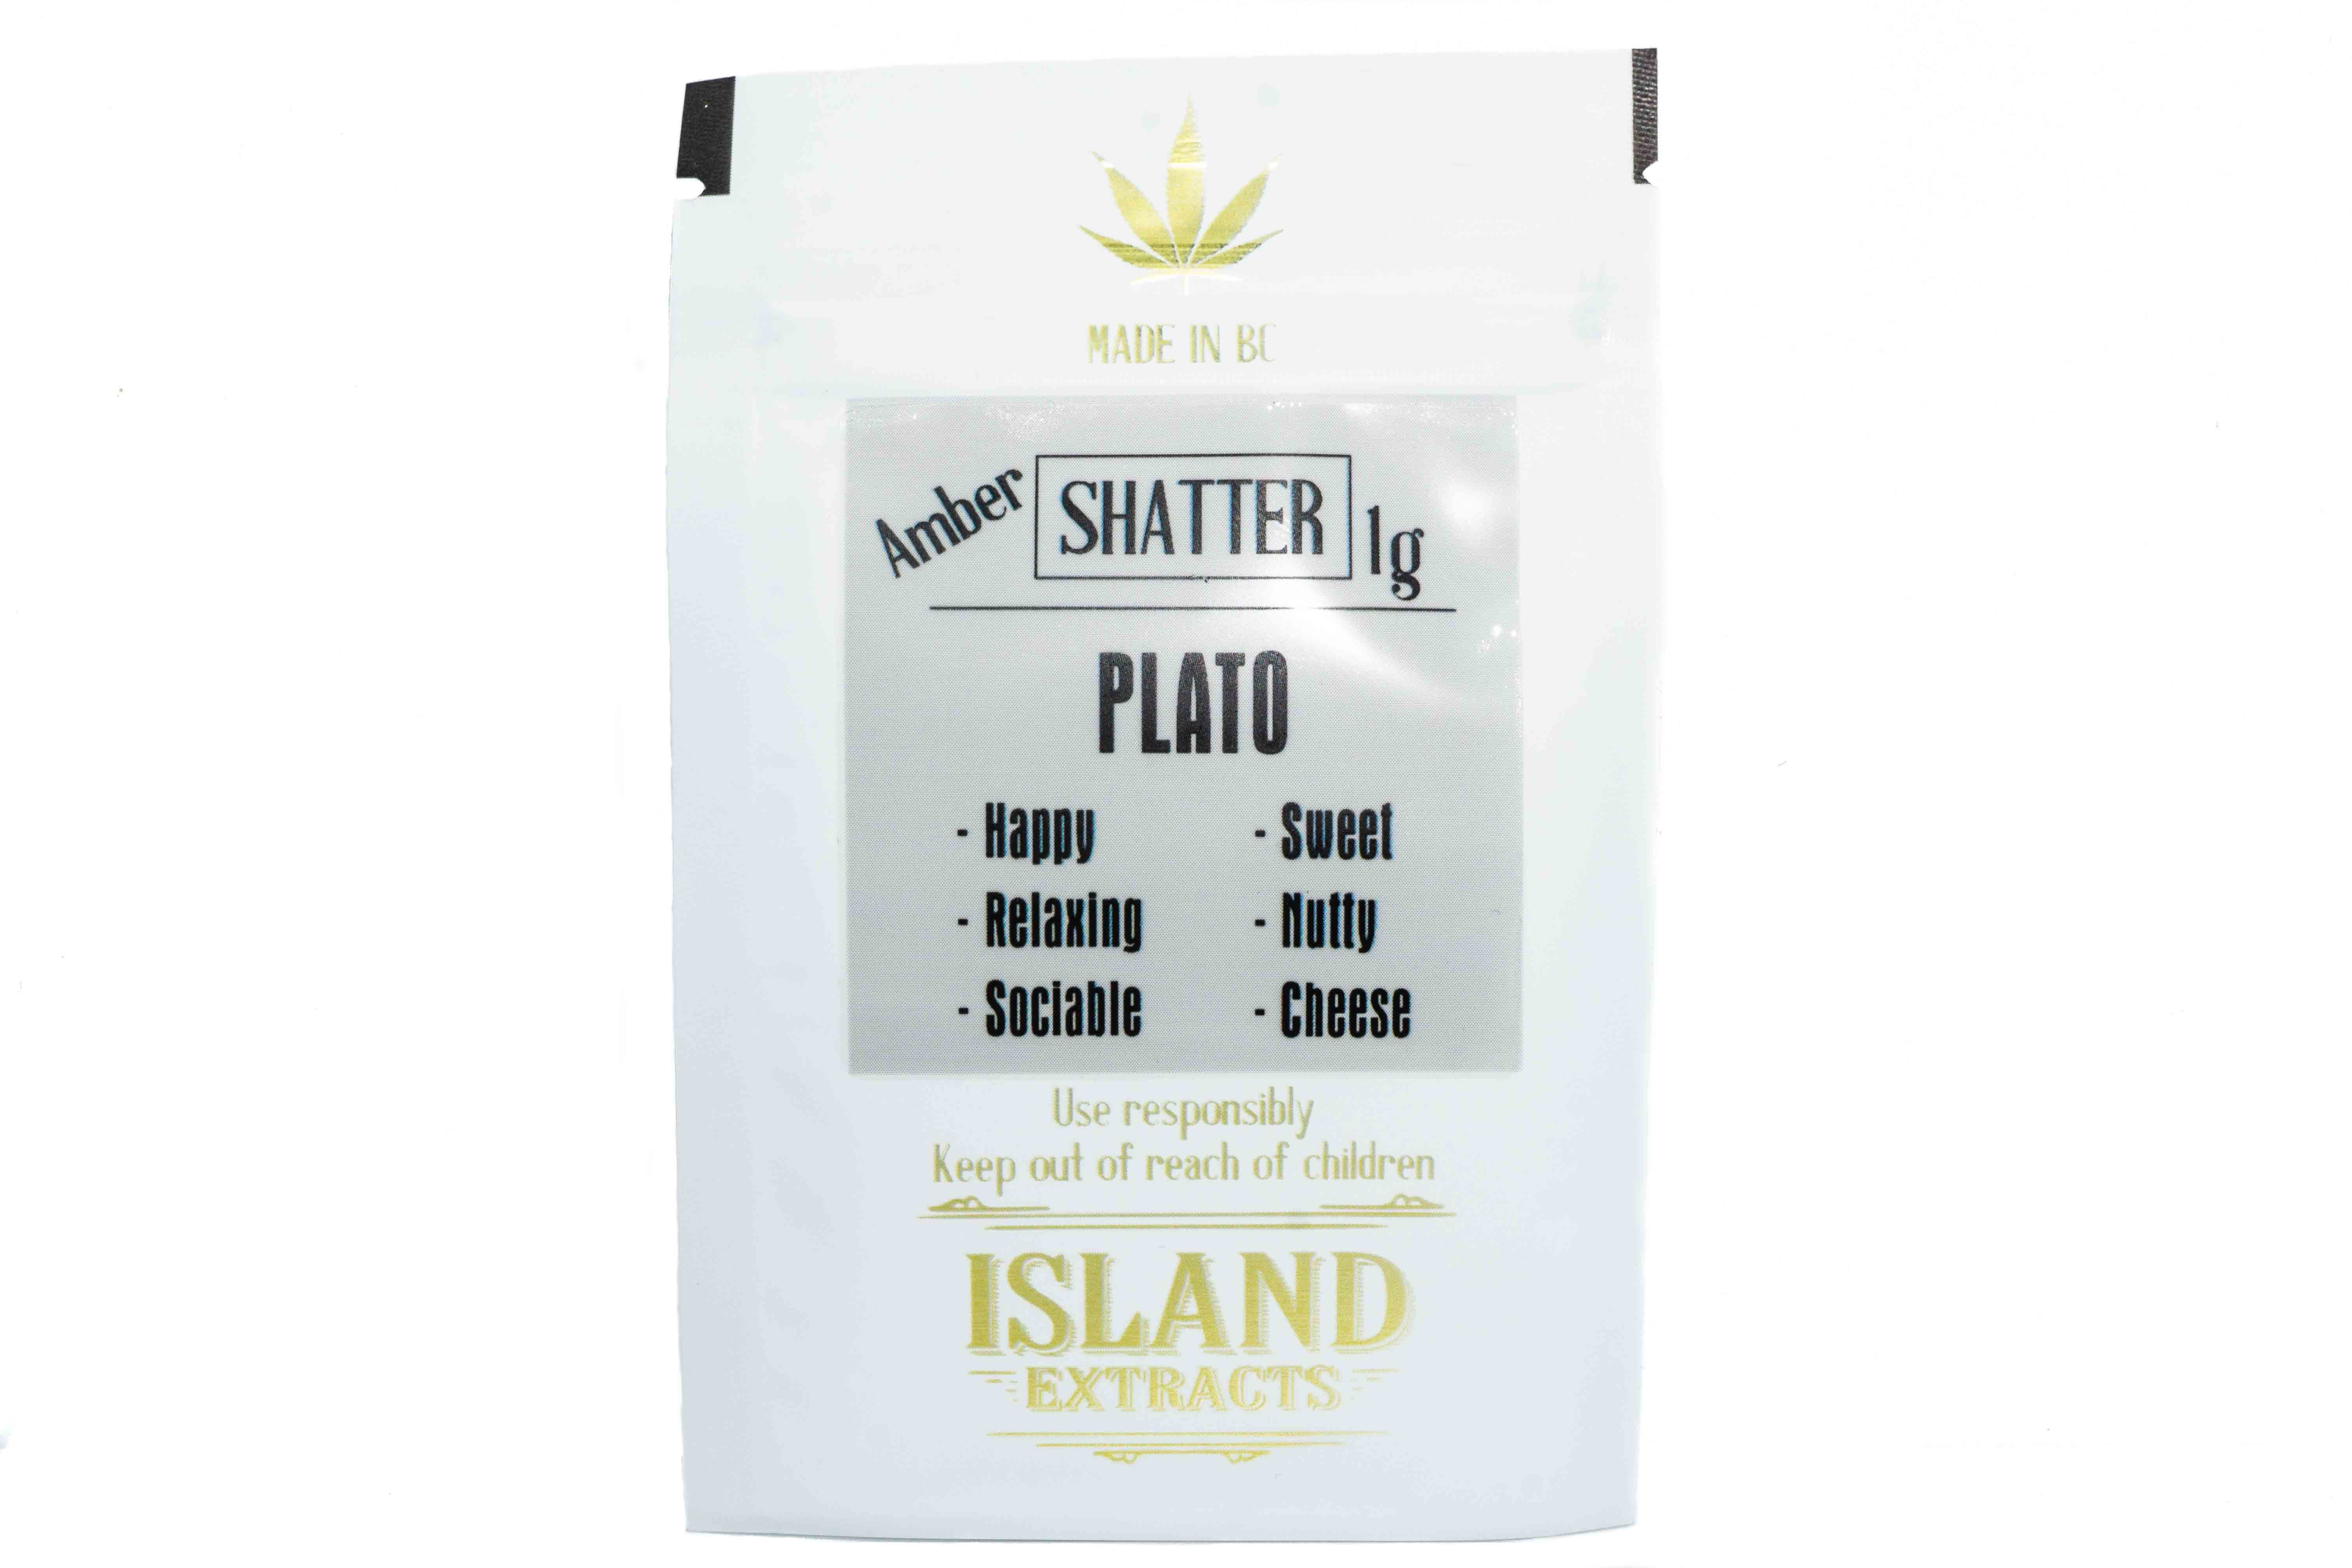 Plato (UK Cheese & Romulan) (1g) Shatter by Island Extracts 01317